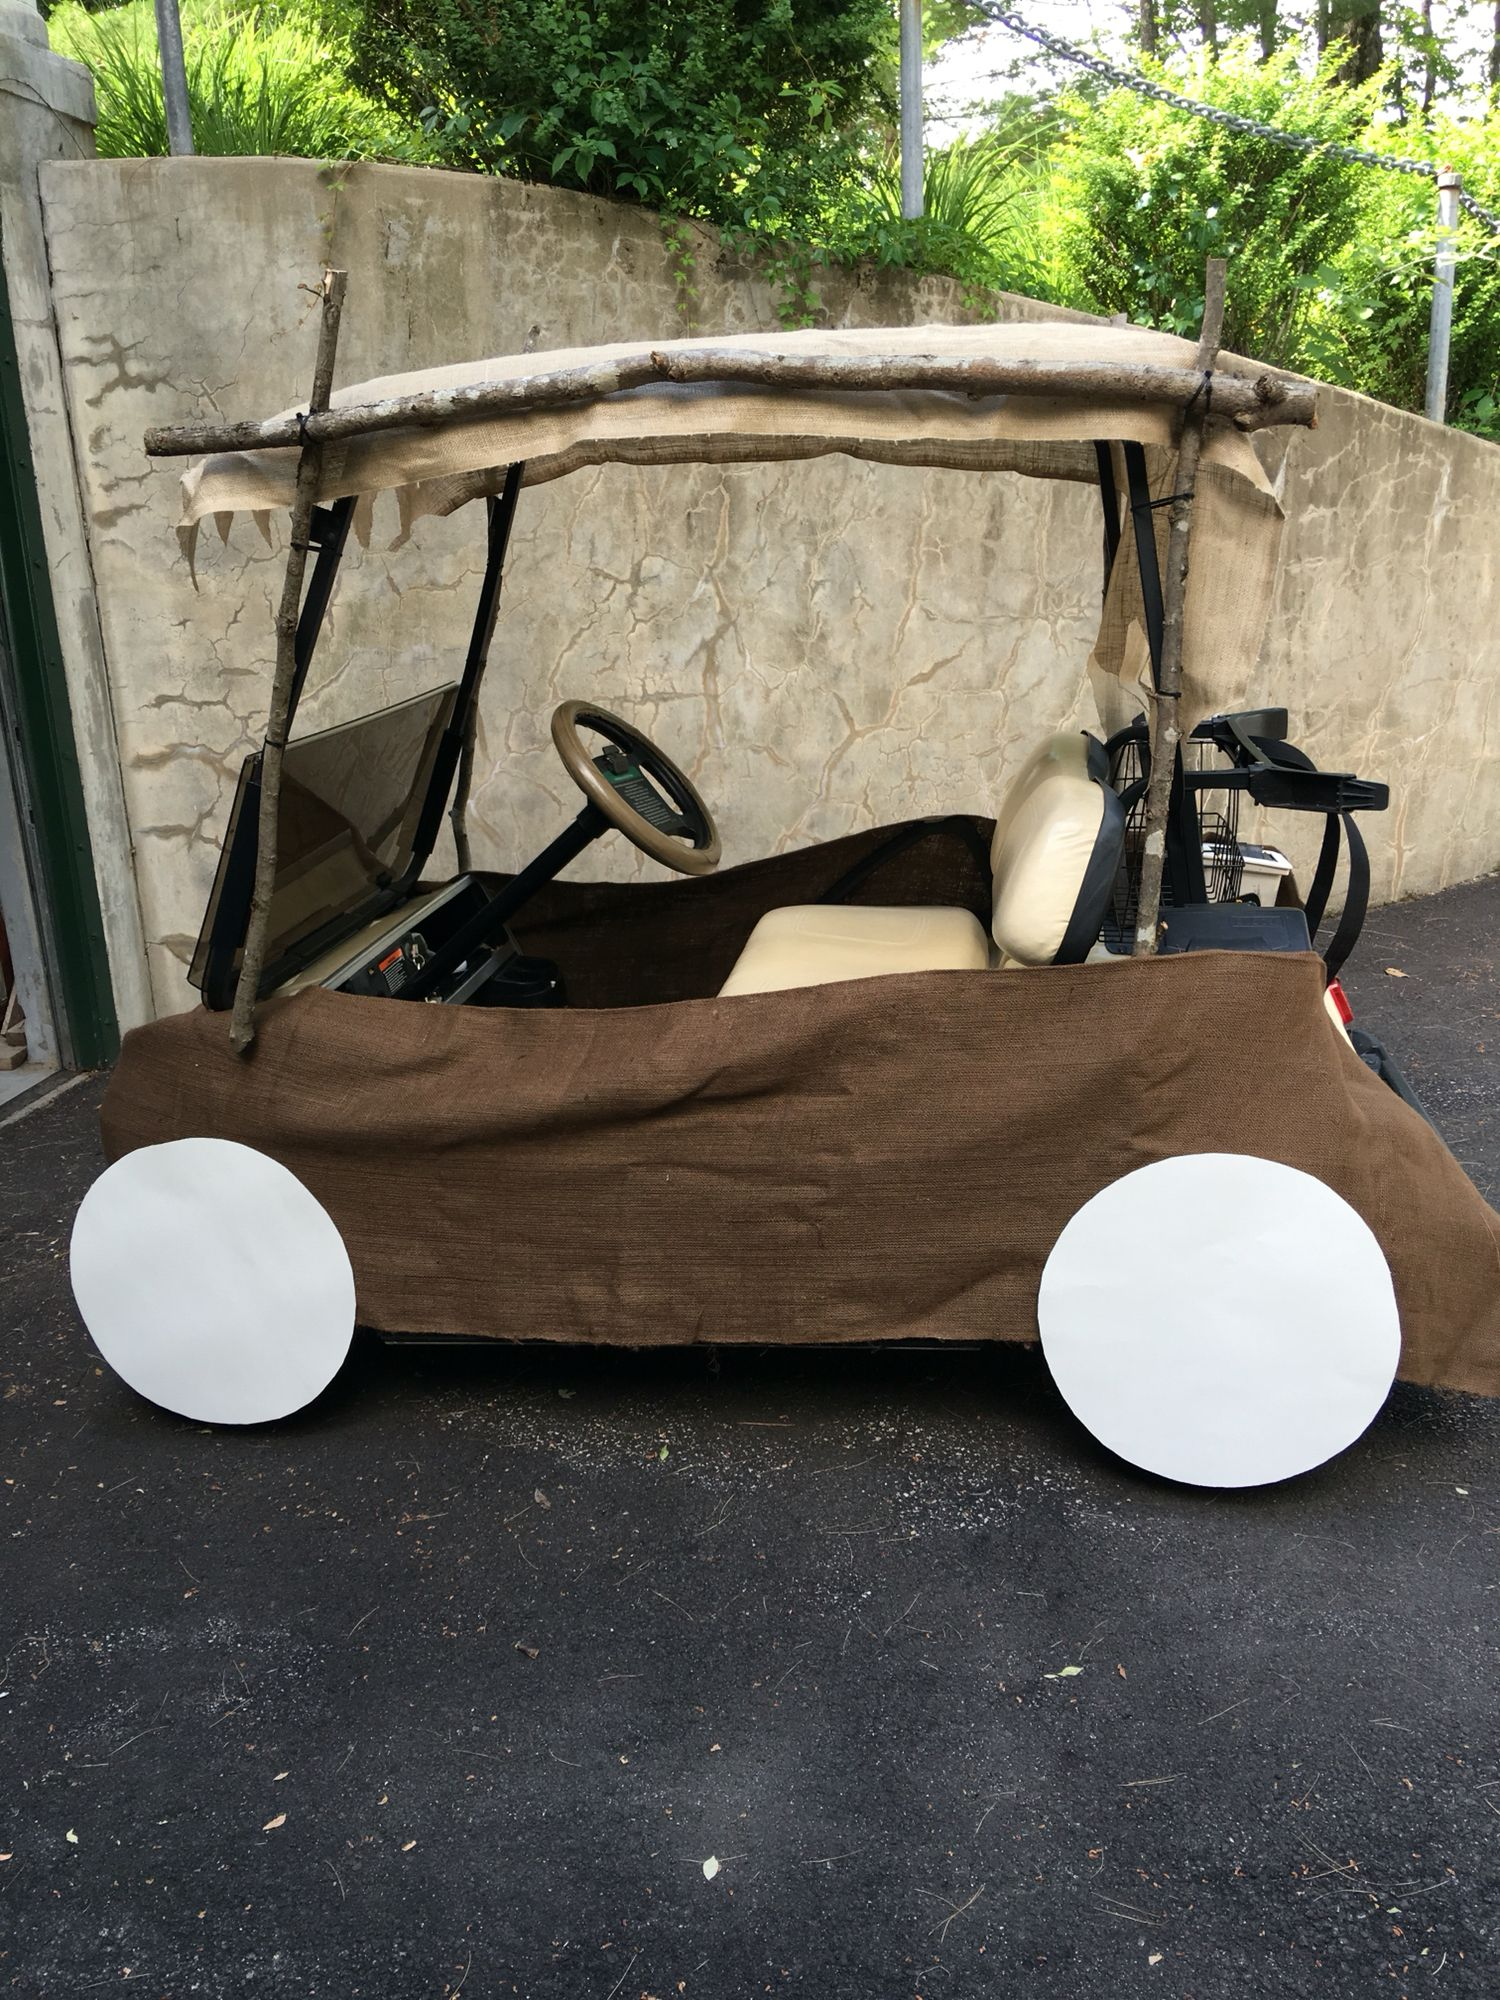 Flintstone golf cart | Golf Carts | Pinterest | Golf carts, Golf and on floating golf game, floating golf hole, floating van, floating generator, floating tank, floating utv, floating golf green,